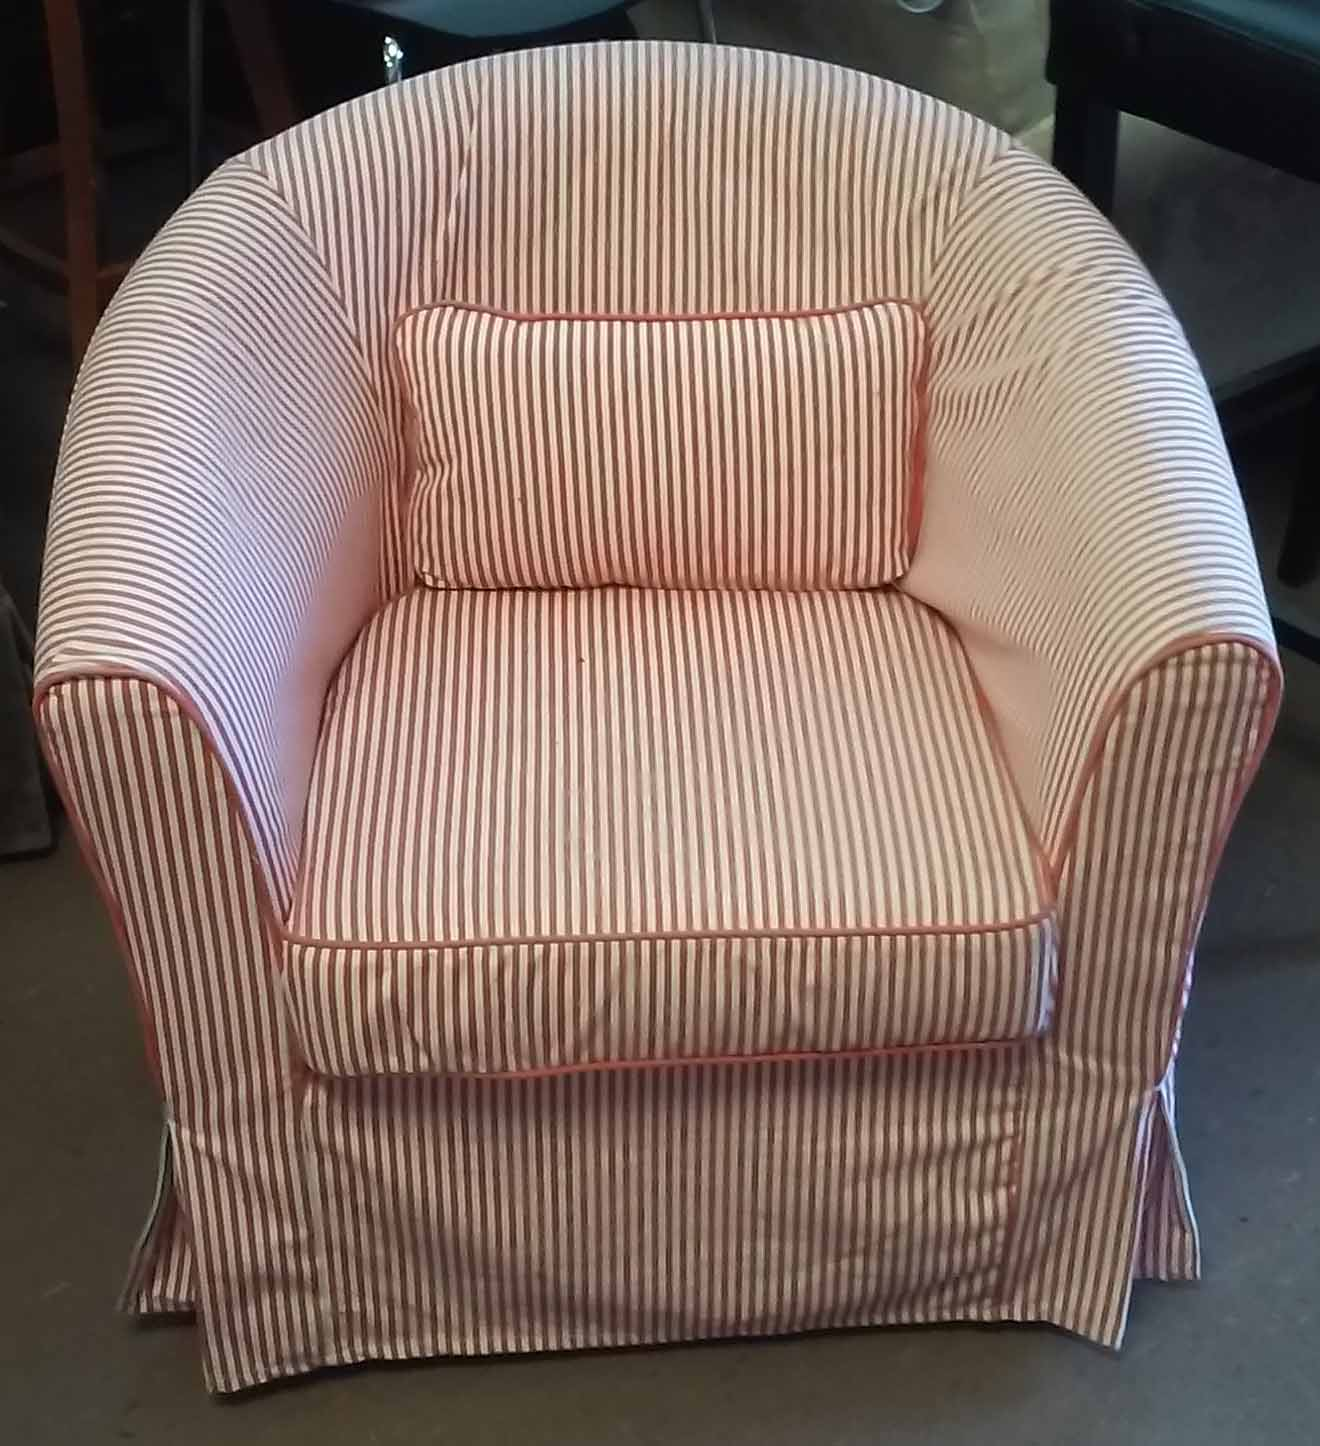 Red Striped Chair Uhuru Furniture And Collectibles Sold Red And White Striped